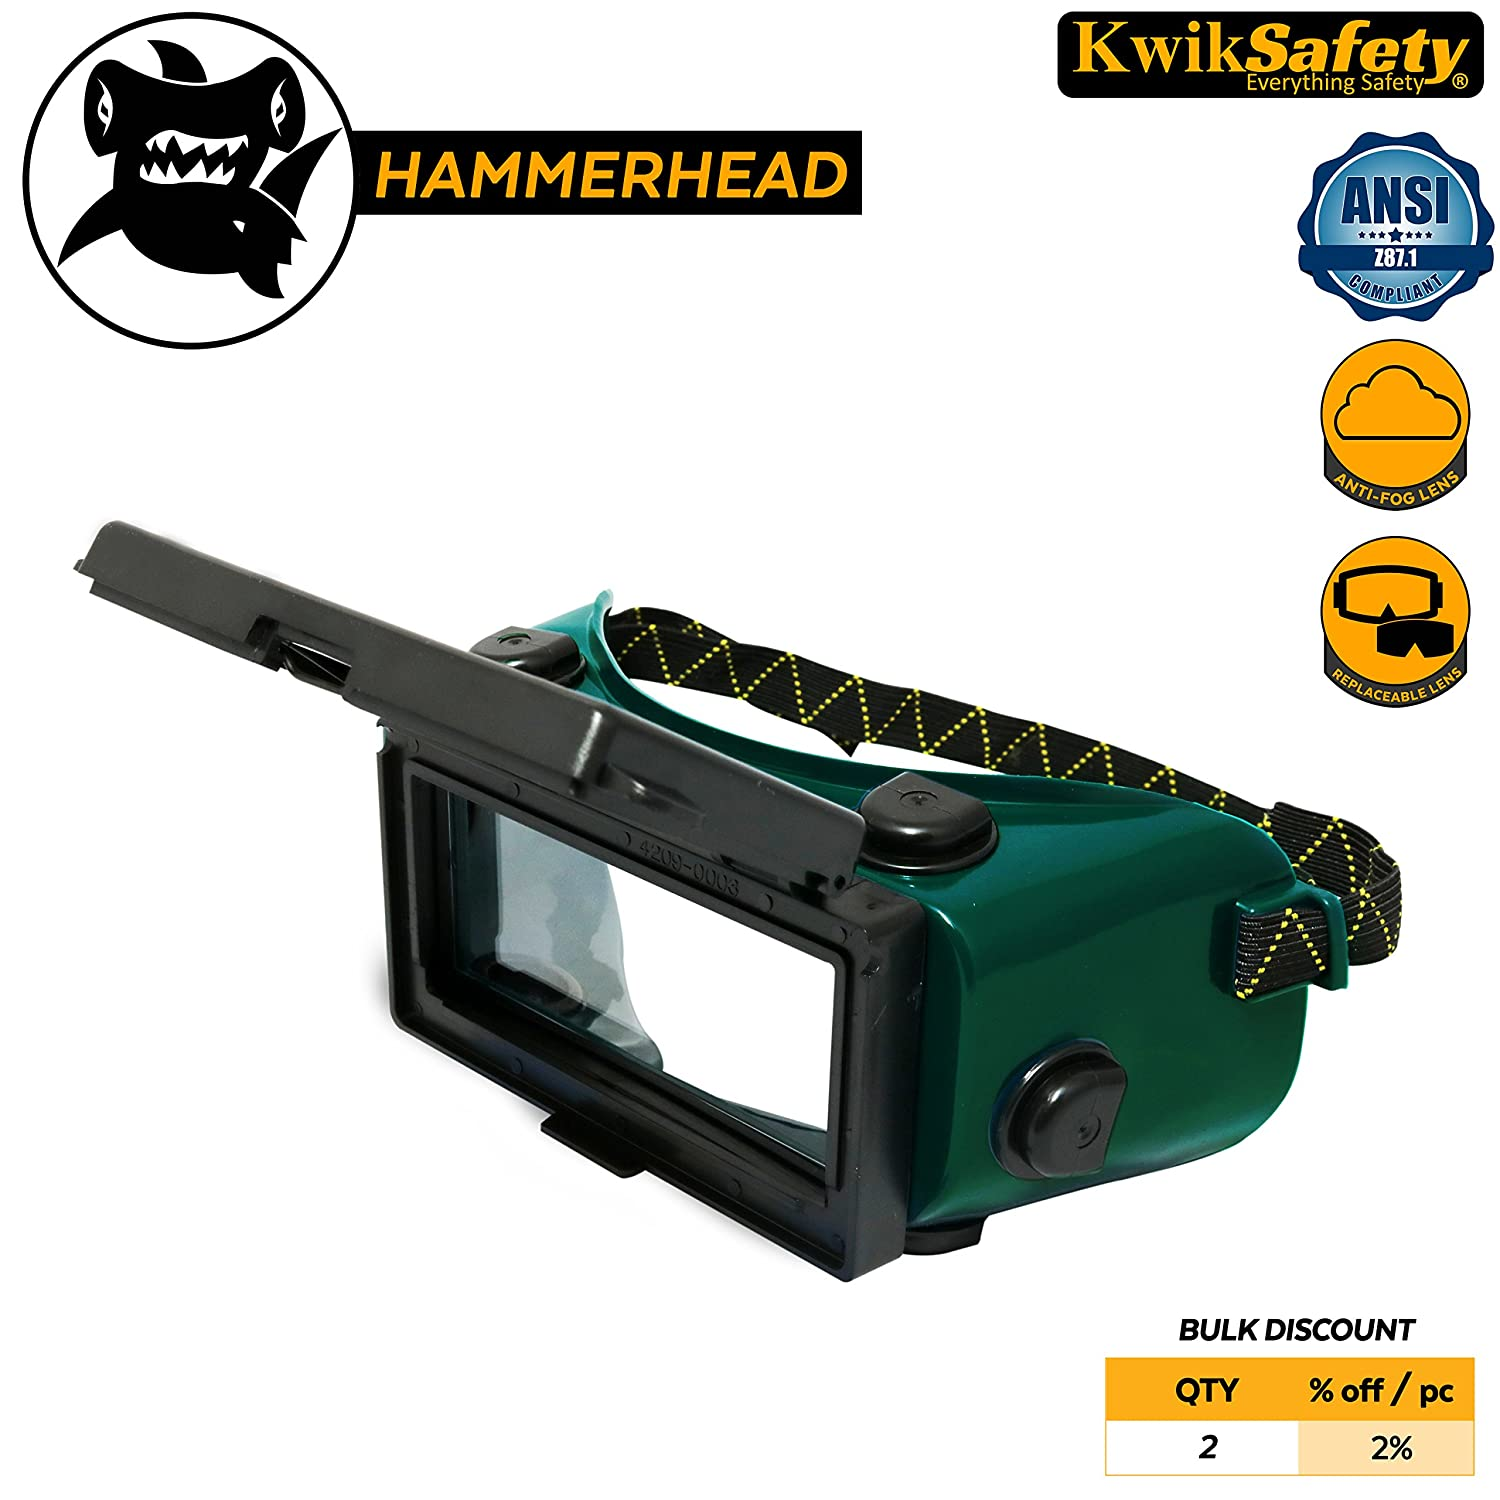 KwikSafety (Charlotte, NC) HAMMERHEAD Industrial ANSI (ANTI-FOG, Snug FIT) Welding Goggles | Flip-Up Shade 5 | Ventilation Plasma Jet Welding Torch Brazing Flame Cutting Gas Oxy-Acetylene Green